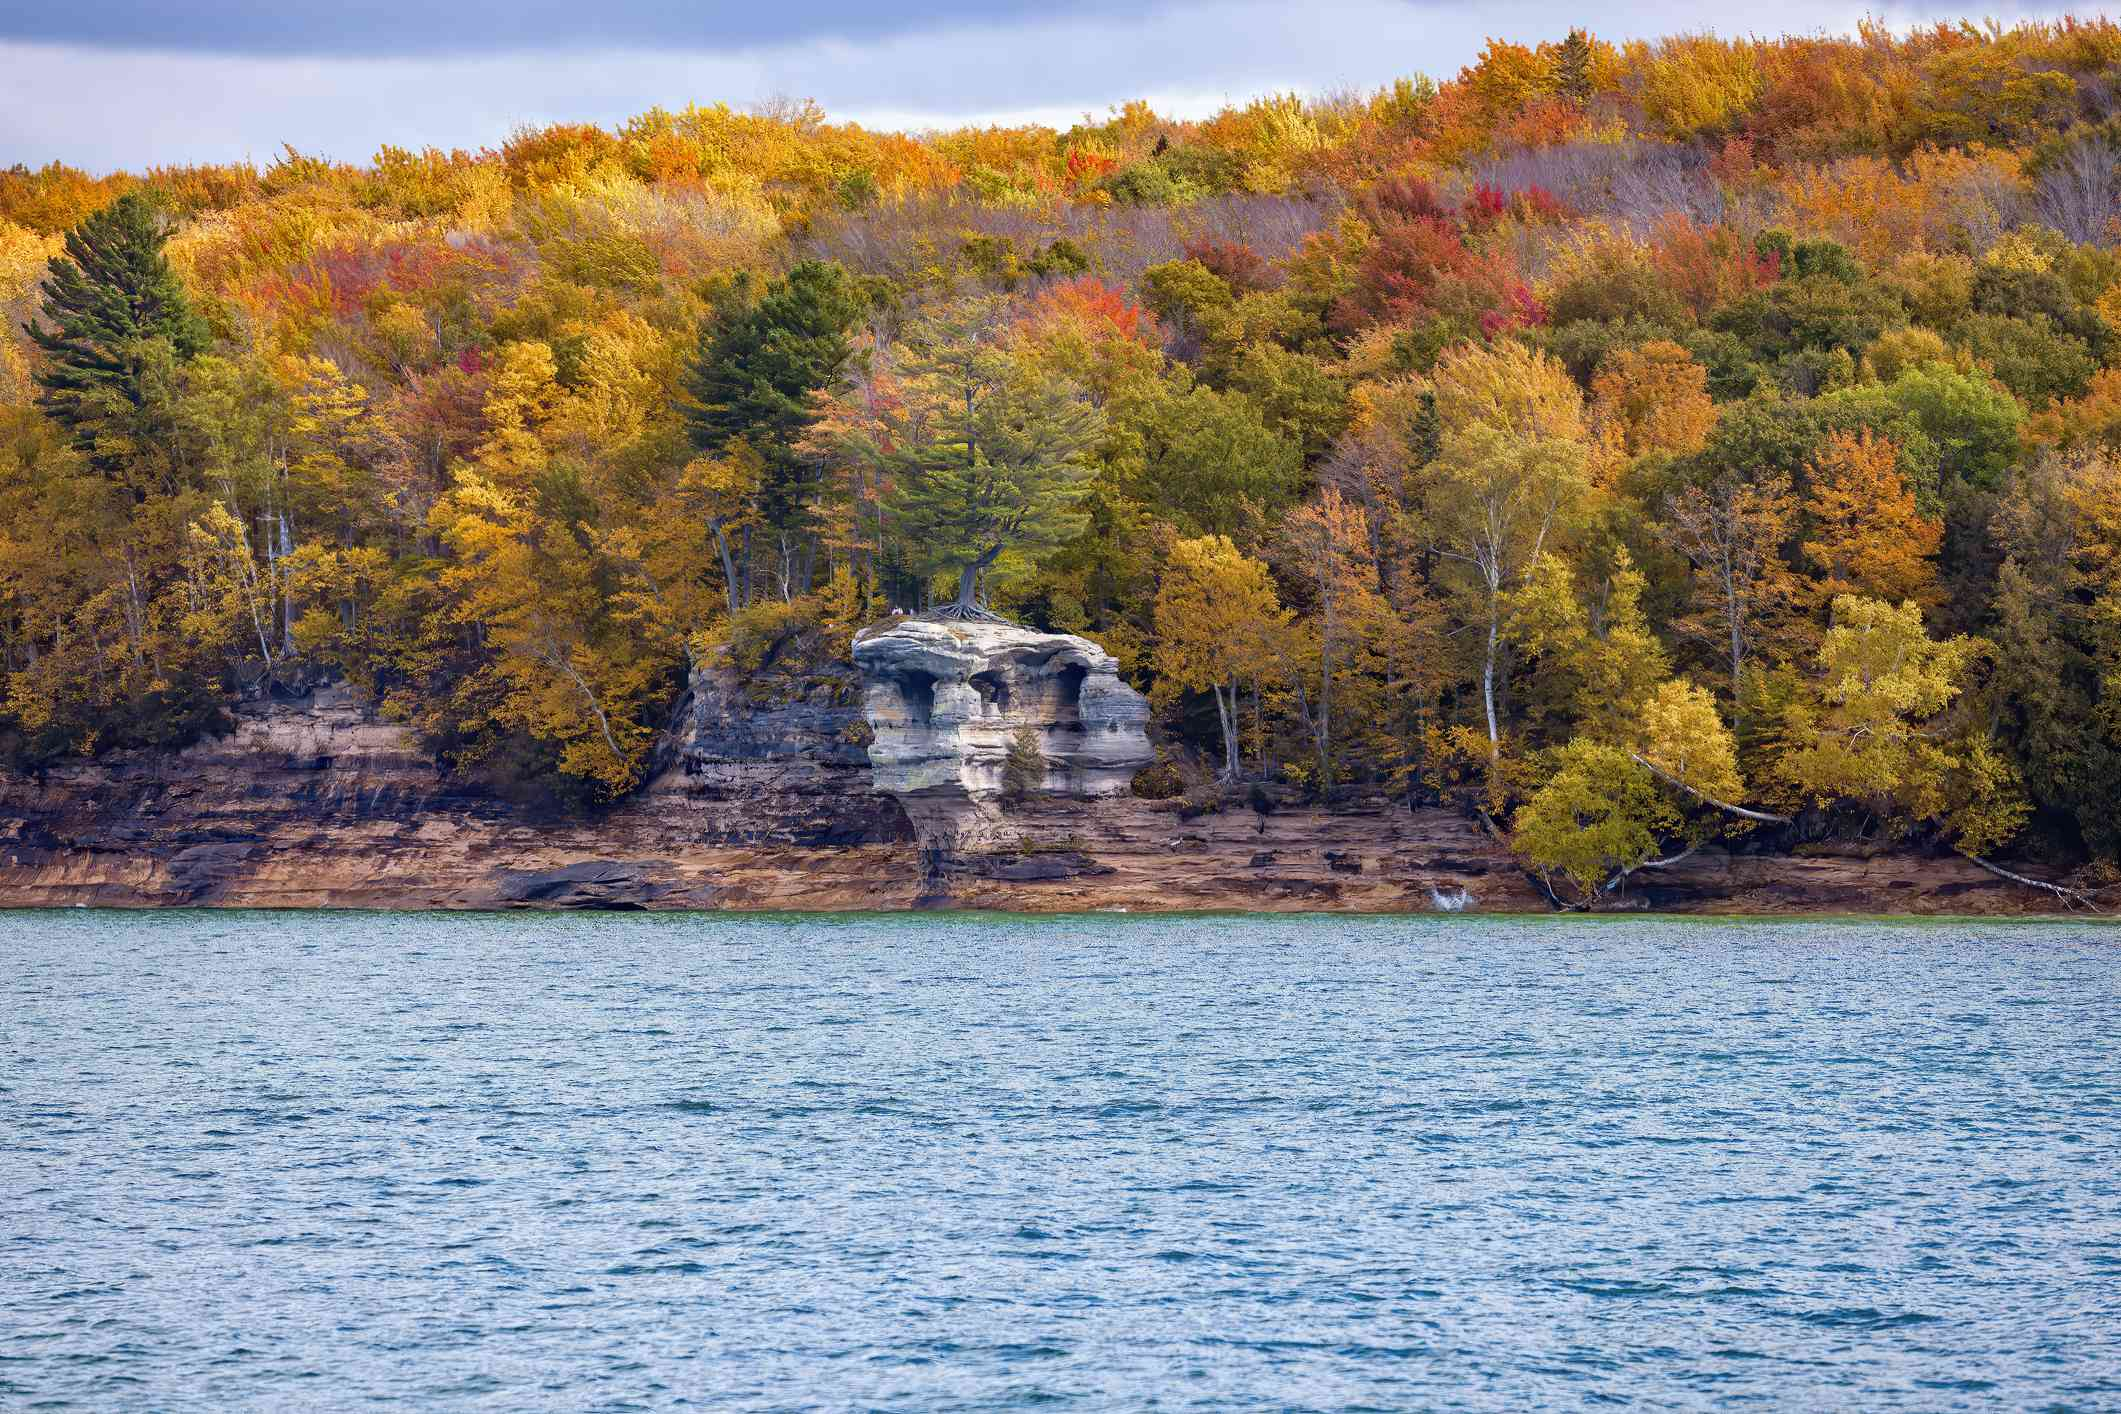 Lush forest of trees in gold, orange, red, and green autumn colors in Hiawatha National Forest along the Pictured Rocks National Seashore under a blue sky